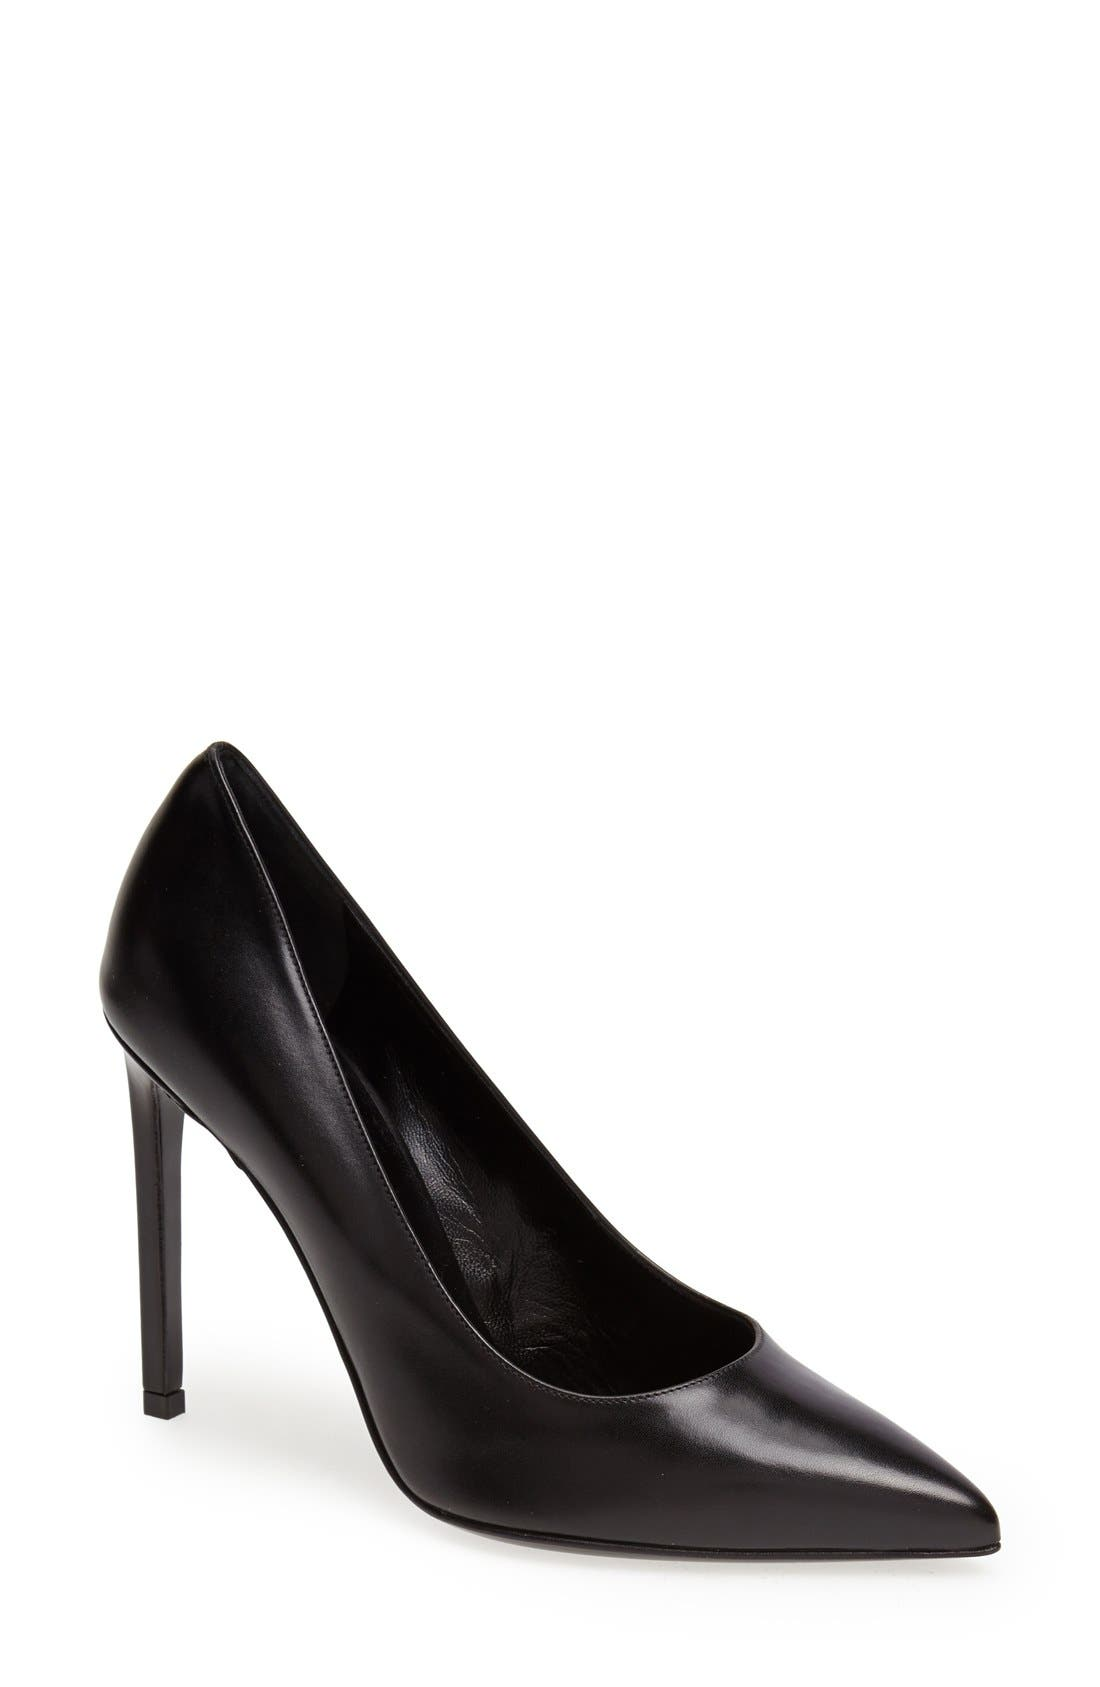 Alternate Image 1 Selected - Saint Laurent 'Paris' Pointy Toe Pump